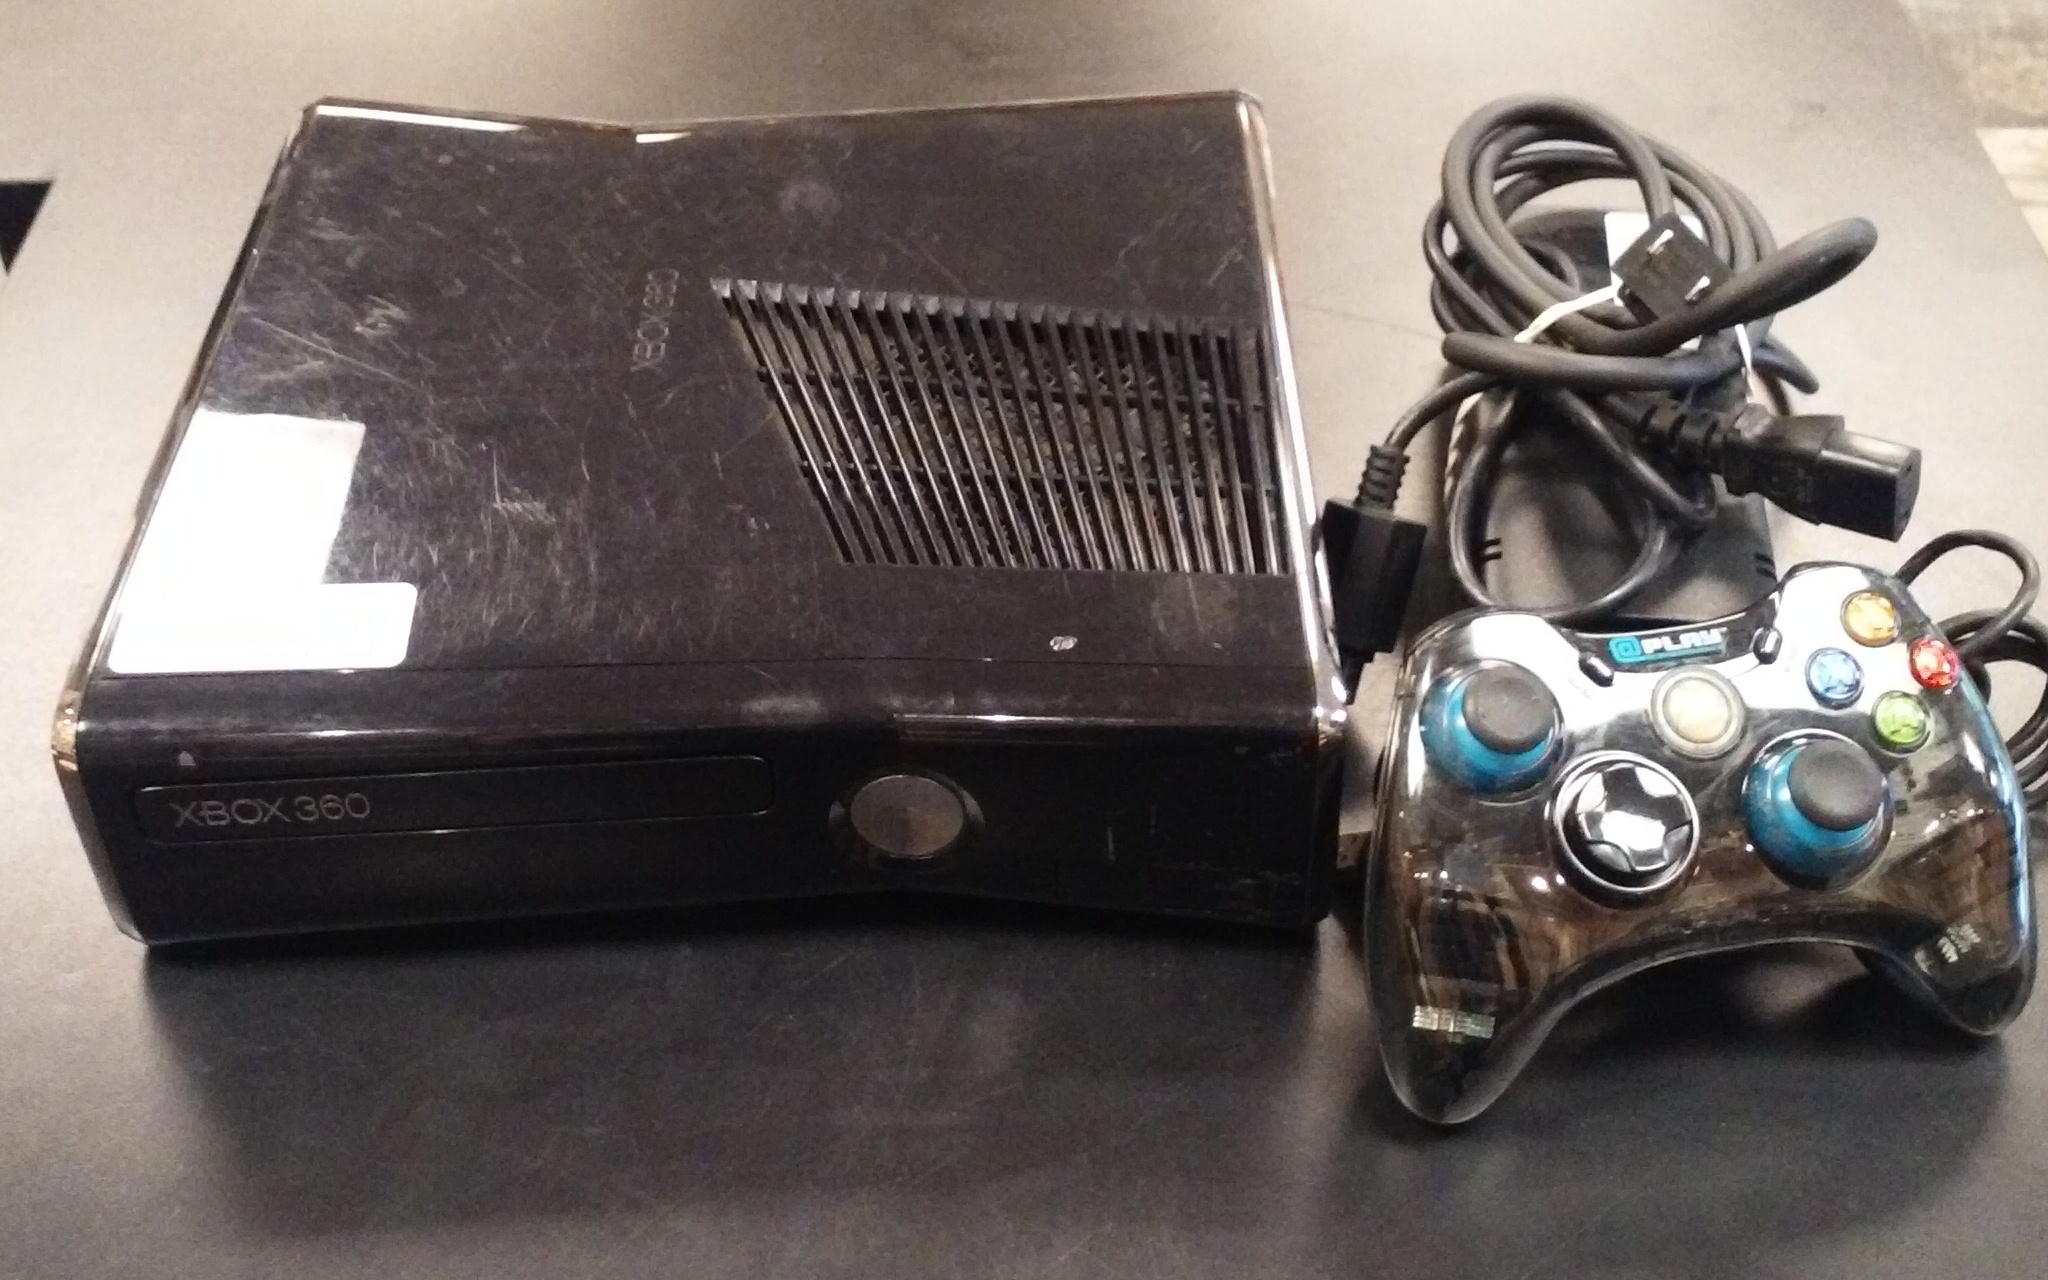 MICROSOFT - 1439 - XBOX 360 GAME SYSTEM